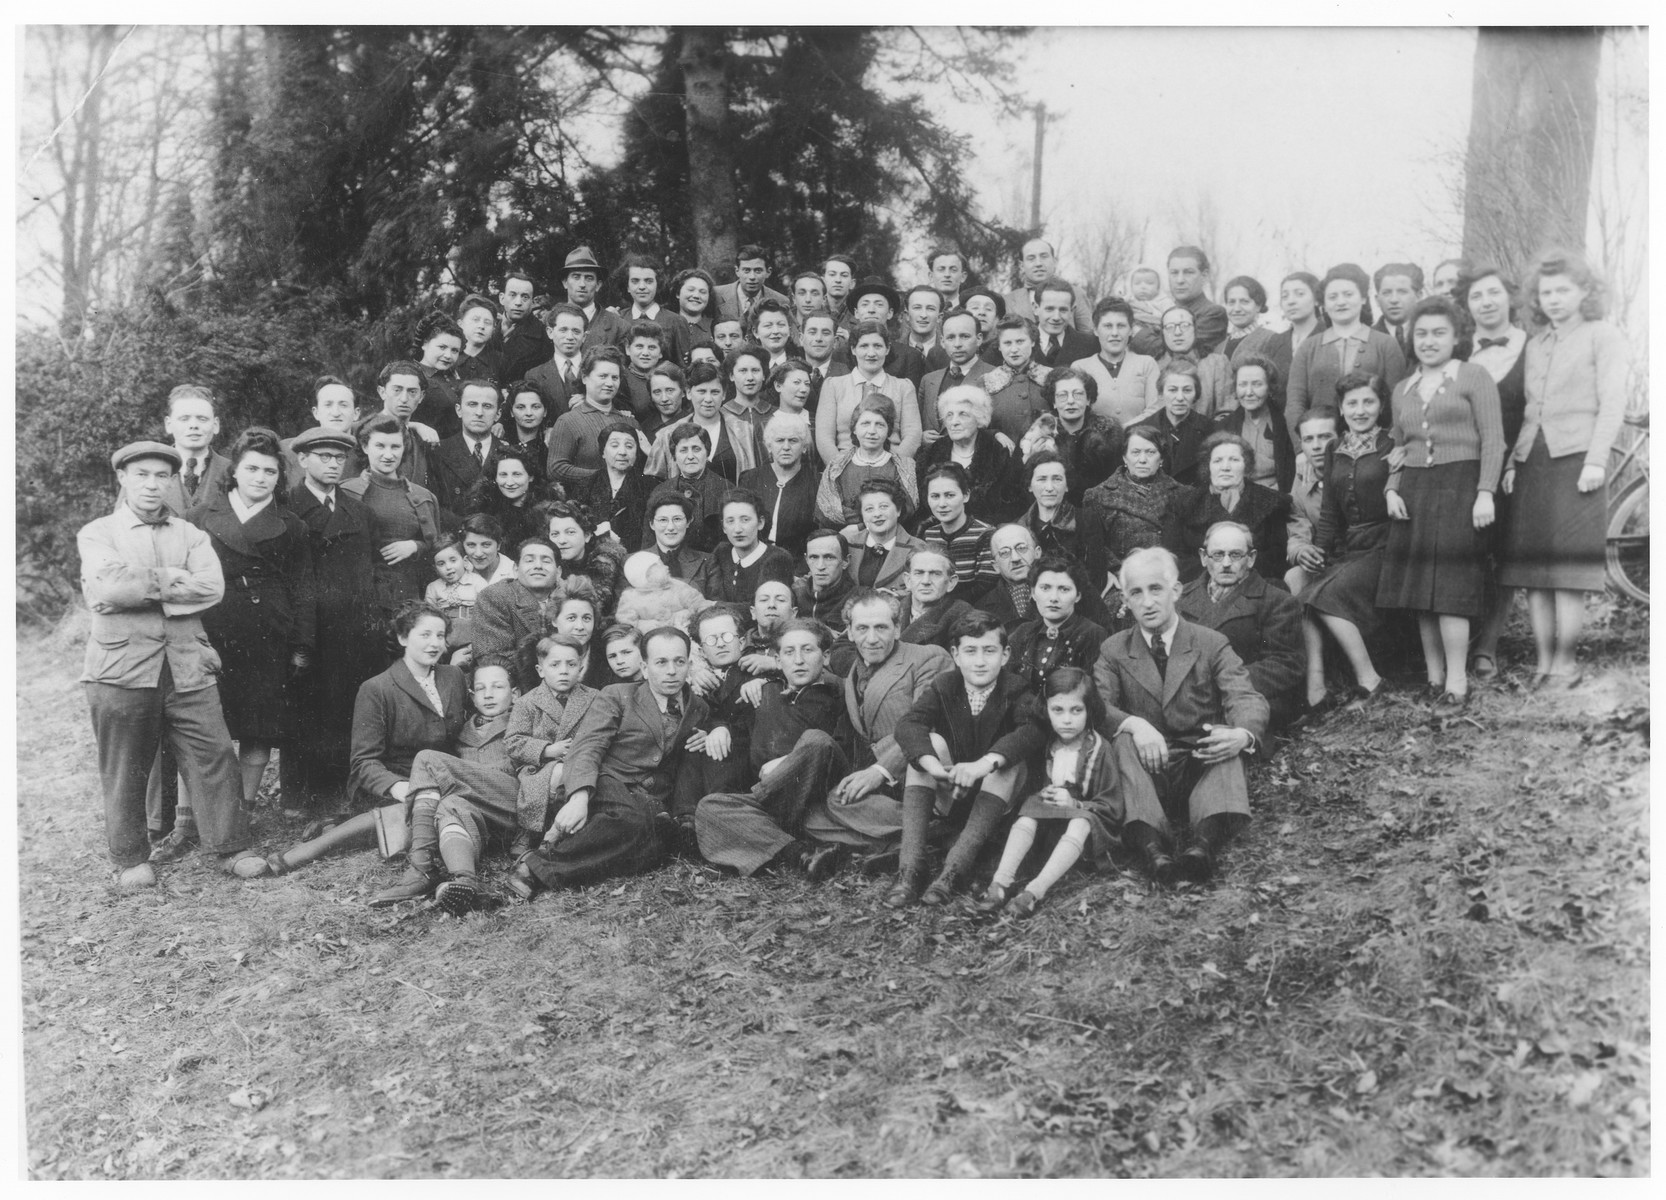 Group portrait of German Jewish refugees living in Belgium who were forcibly resettled to Bilzen after the German invasion in anticipation of their being deported back to Germany.  Among those pictured are Gisele Soldinger (second from the right), Ida Soldinger (standing on the left), Hinda Rose Soldinger (fourth row from the front, third from the right) and Edgar David Soldinger (top row, center).     Also pictured is Mendel Szydlow standing in the last row, 8th person from the right holding his infant son Werner. His wife Berta Szydlow- Sieradzki is the 2nd person to the right of him. Mendel was deported on transport X and murdered in Auschwitz. His wife and son survived the war in hiding.  Also pictured are  Menasche Steinhardt, his wife Eidla Edith Steinhardt-Safier and their son Harry Henri Steinhardt. Menasche is standing on the second row standing, second from the left, only his head visible behand the person with the darker cap. His wife with their son on her lap is sitting two persons to his right.